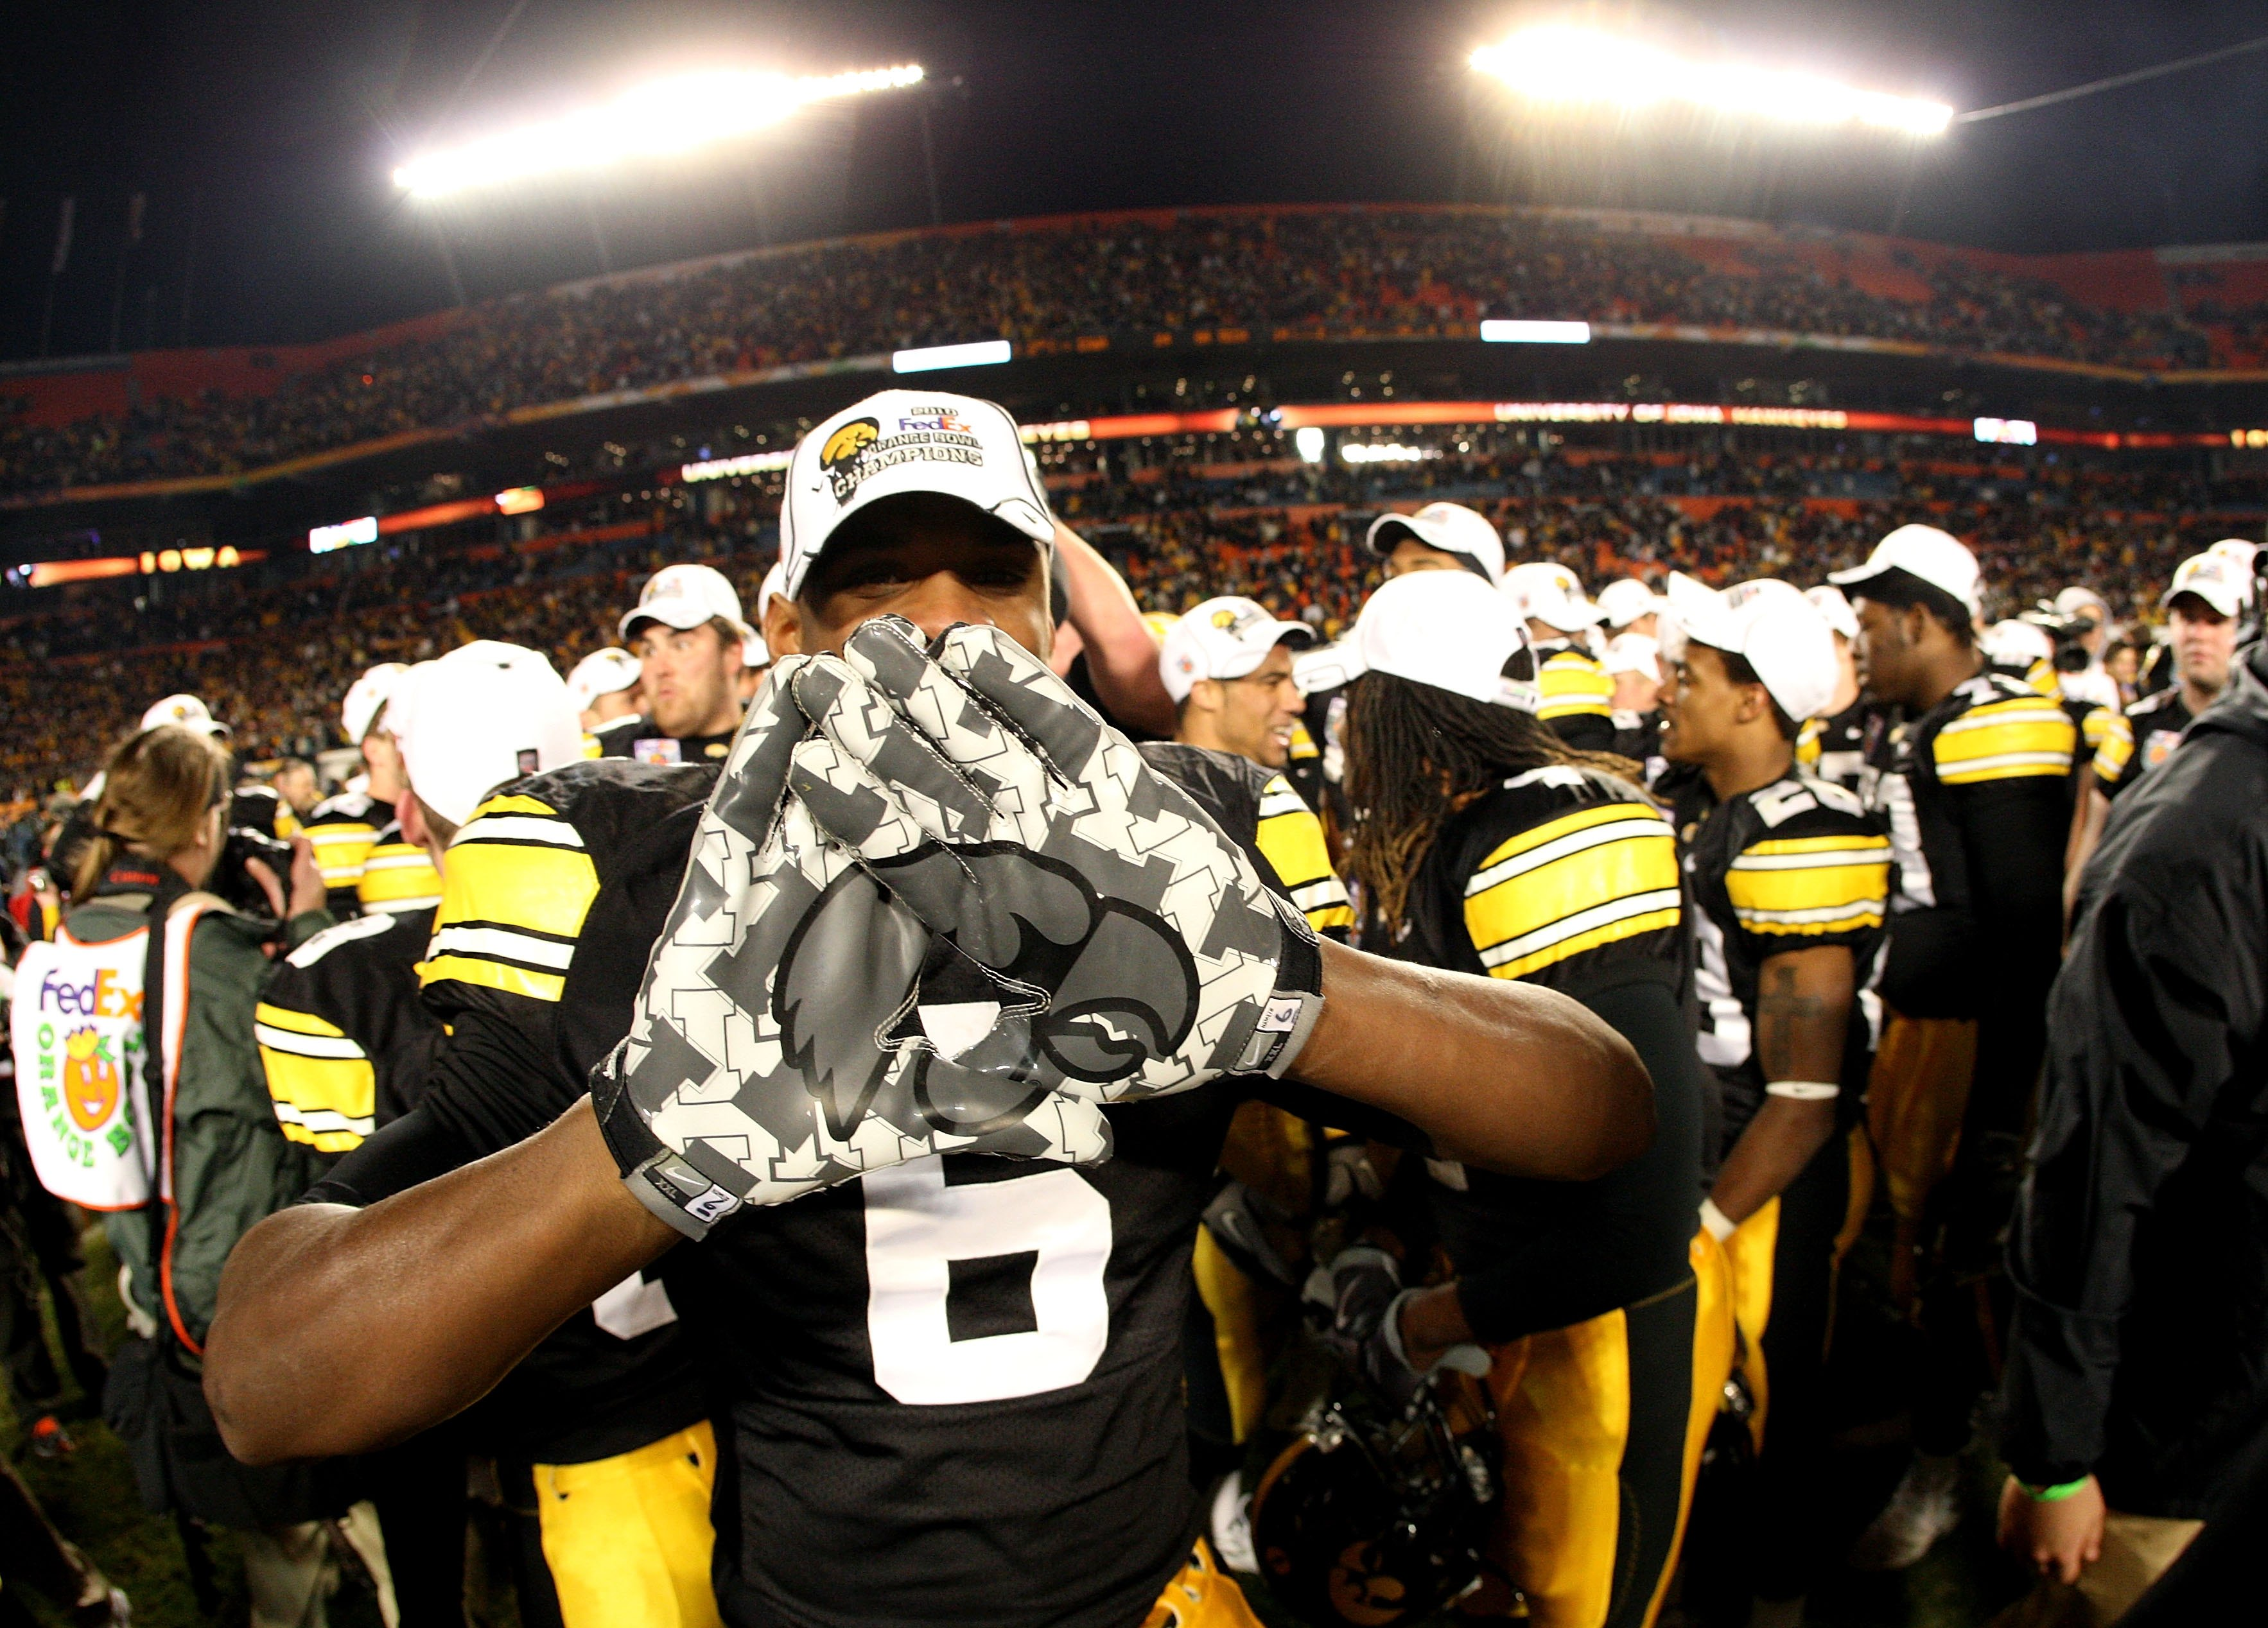 MIAMI GARDENS, FL - JANUARY 05:  Keenan Davis #6 of the Iowa Hawkeyes celebrates after Iowa won 24-14 against the Georgia Tech Yellow Jackets during the FedEx Orange Bowl at Land Shark Stadium on January 5, 2010 in Miami Gardens, Florida.  (Photo by Stree